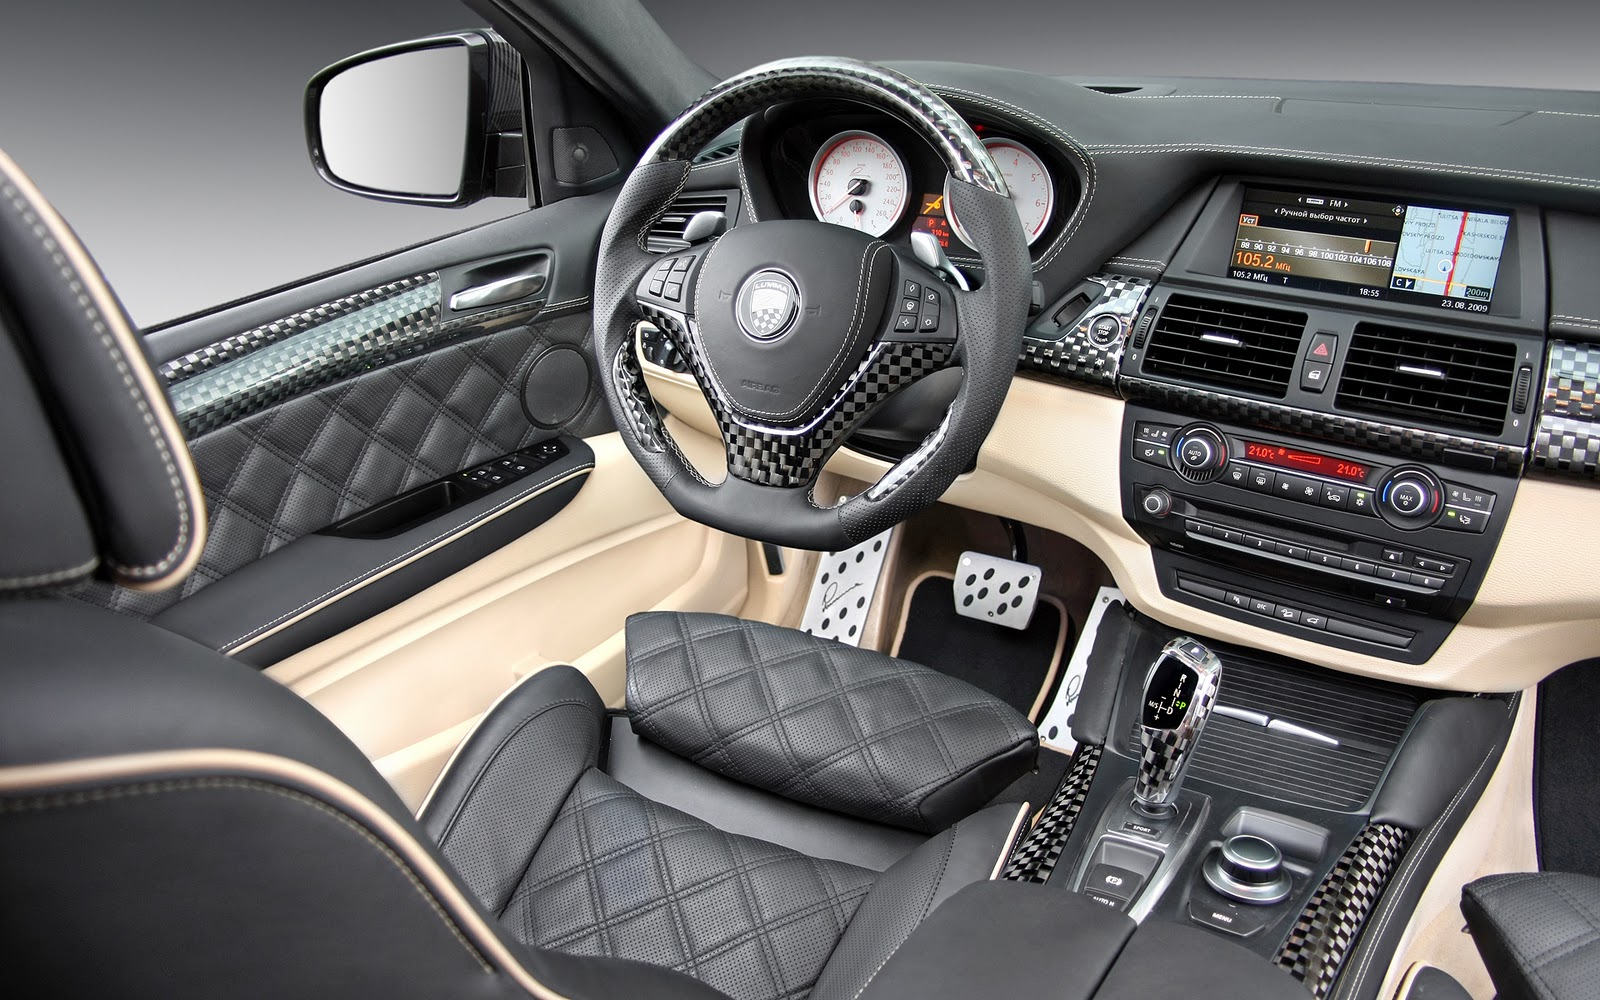 Cool Car Wallpapers Bmw X6 2011 Interior